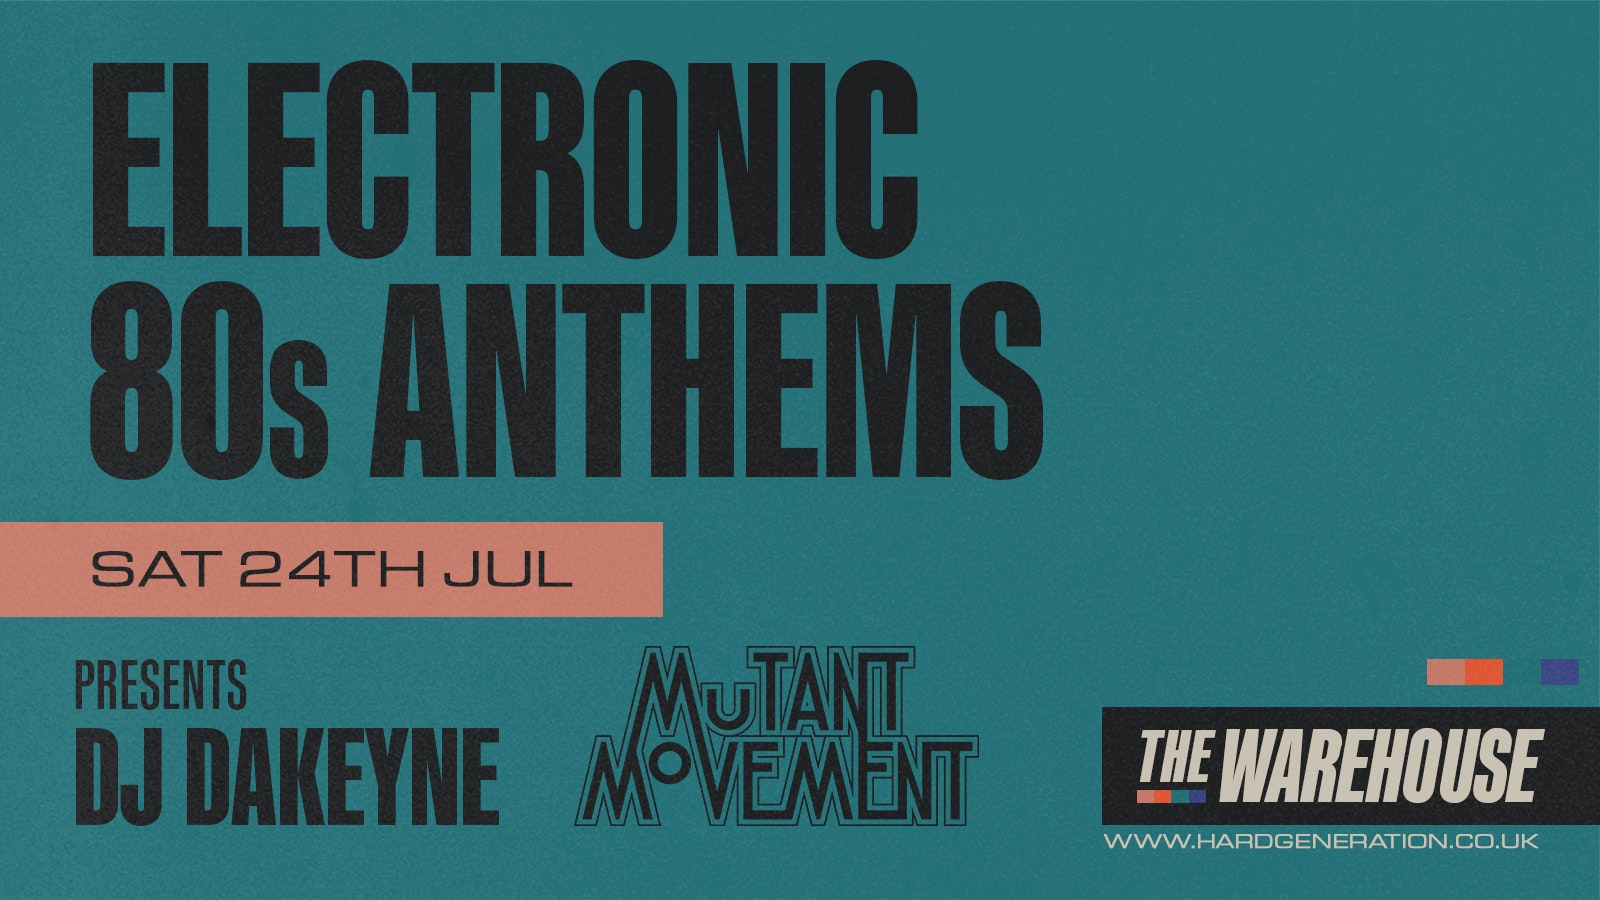 Electronic 80s Anthems: DJ Dakeyne/ Mutant Movement – Club